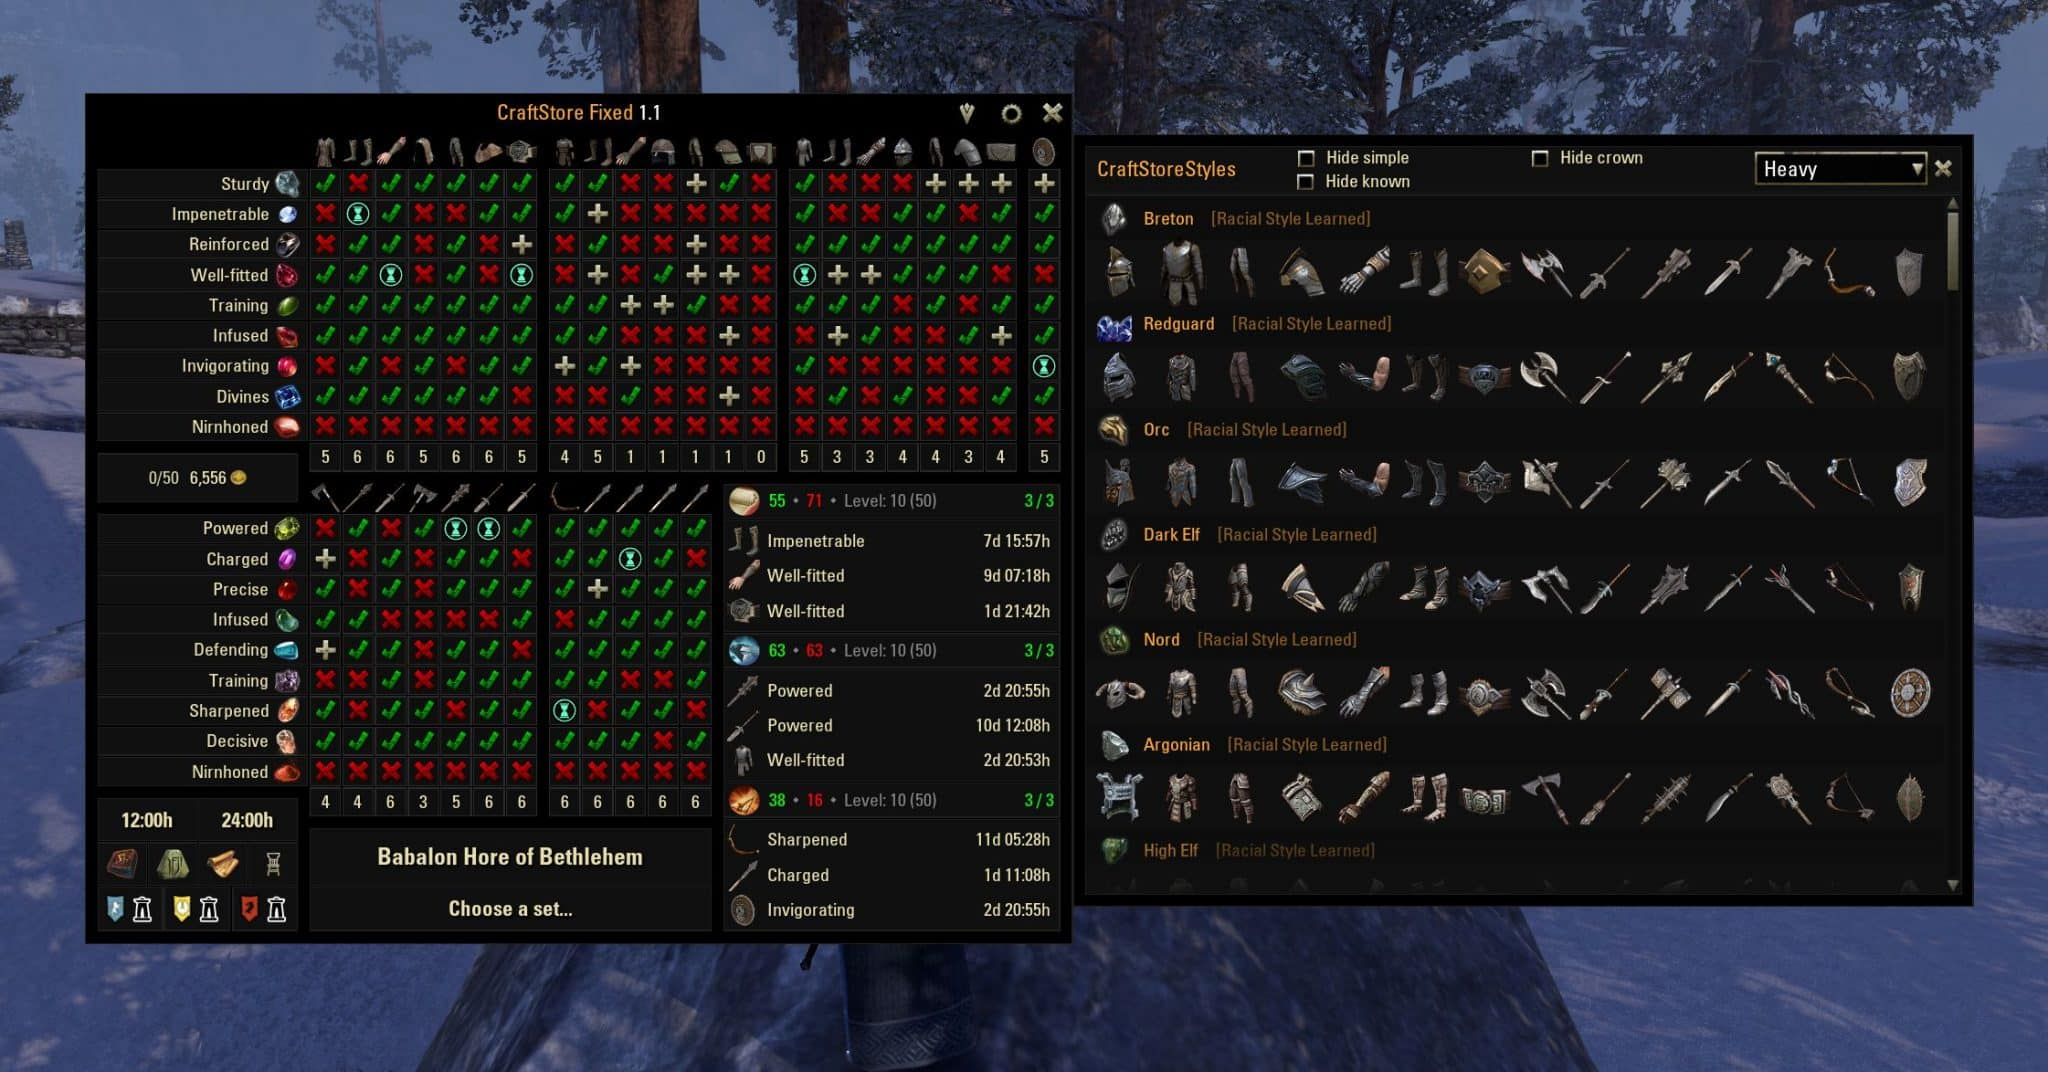 Craftstore DB by Rhyono, The Elder Scrolls Online Addon (image by @serpentaa)